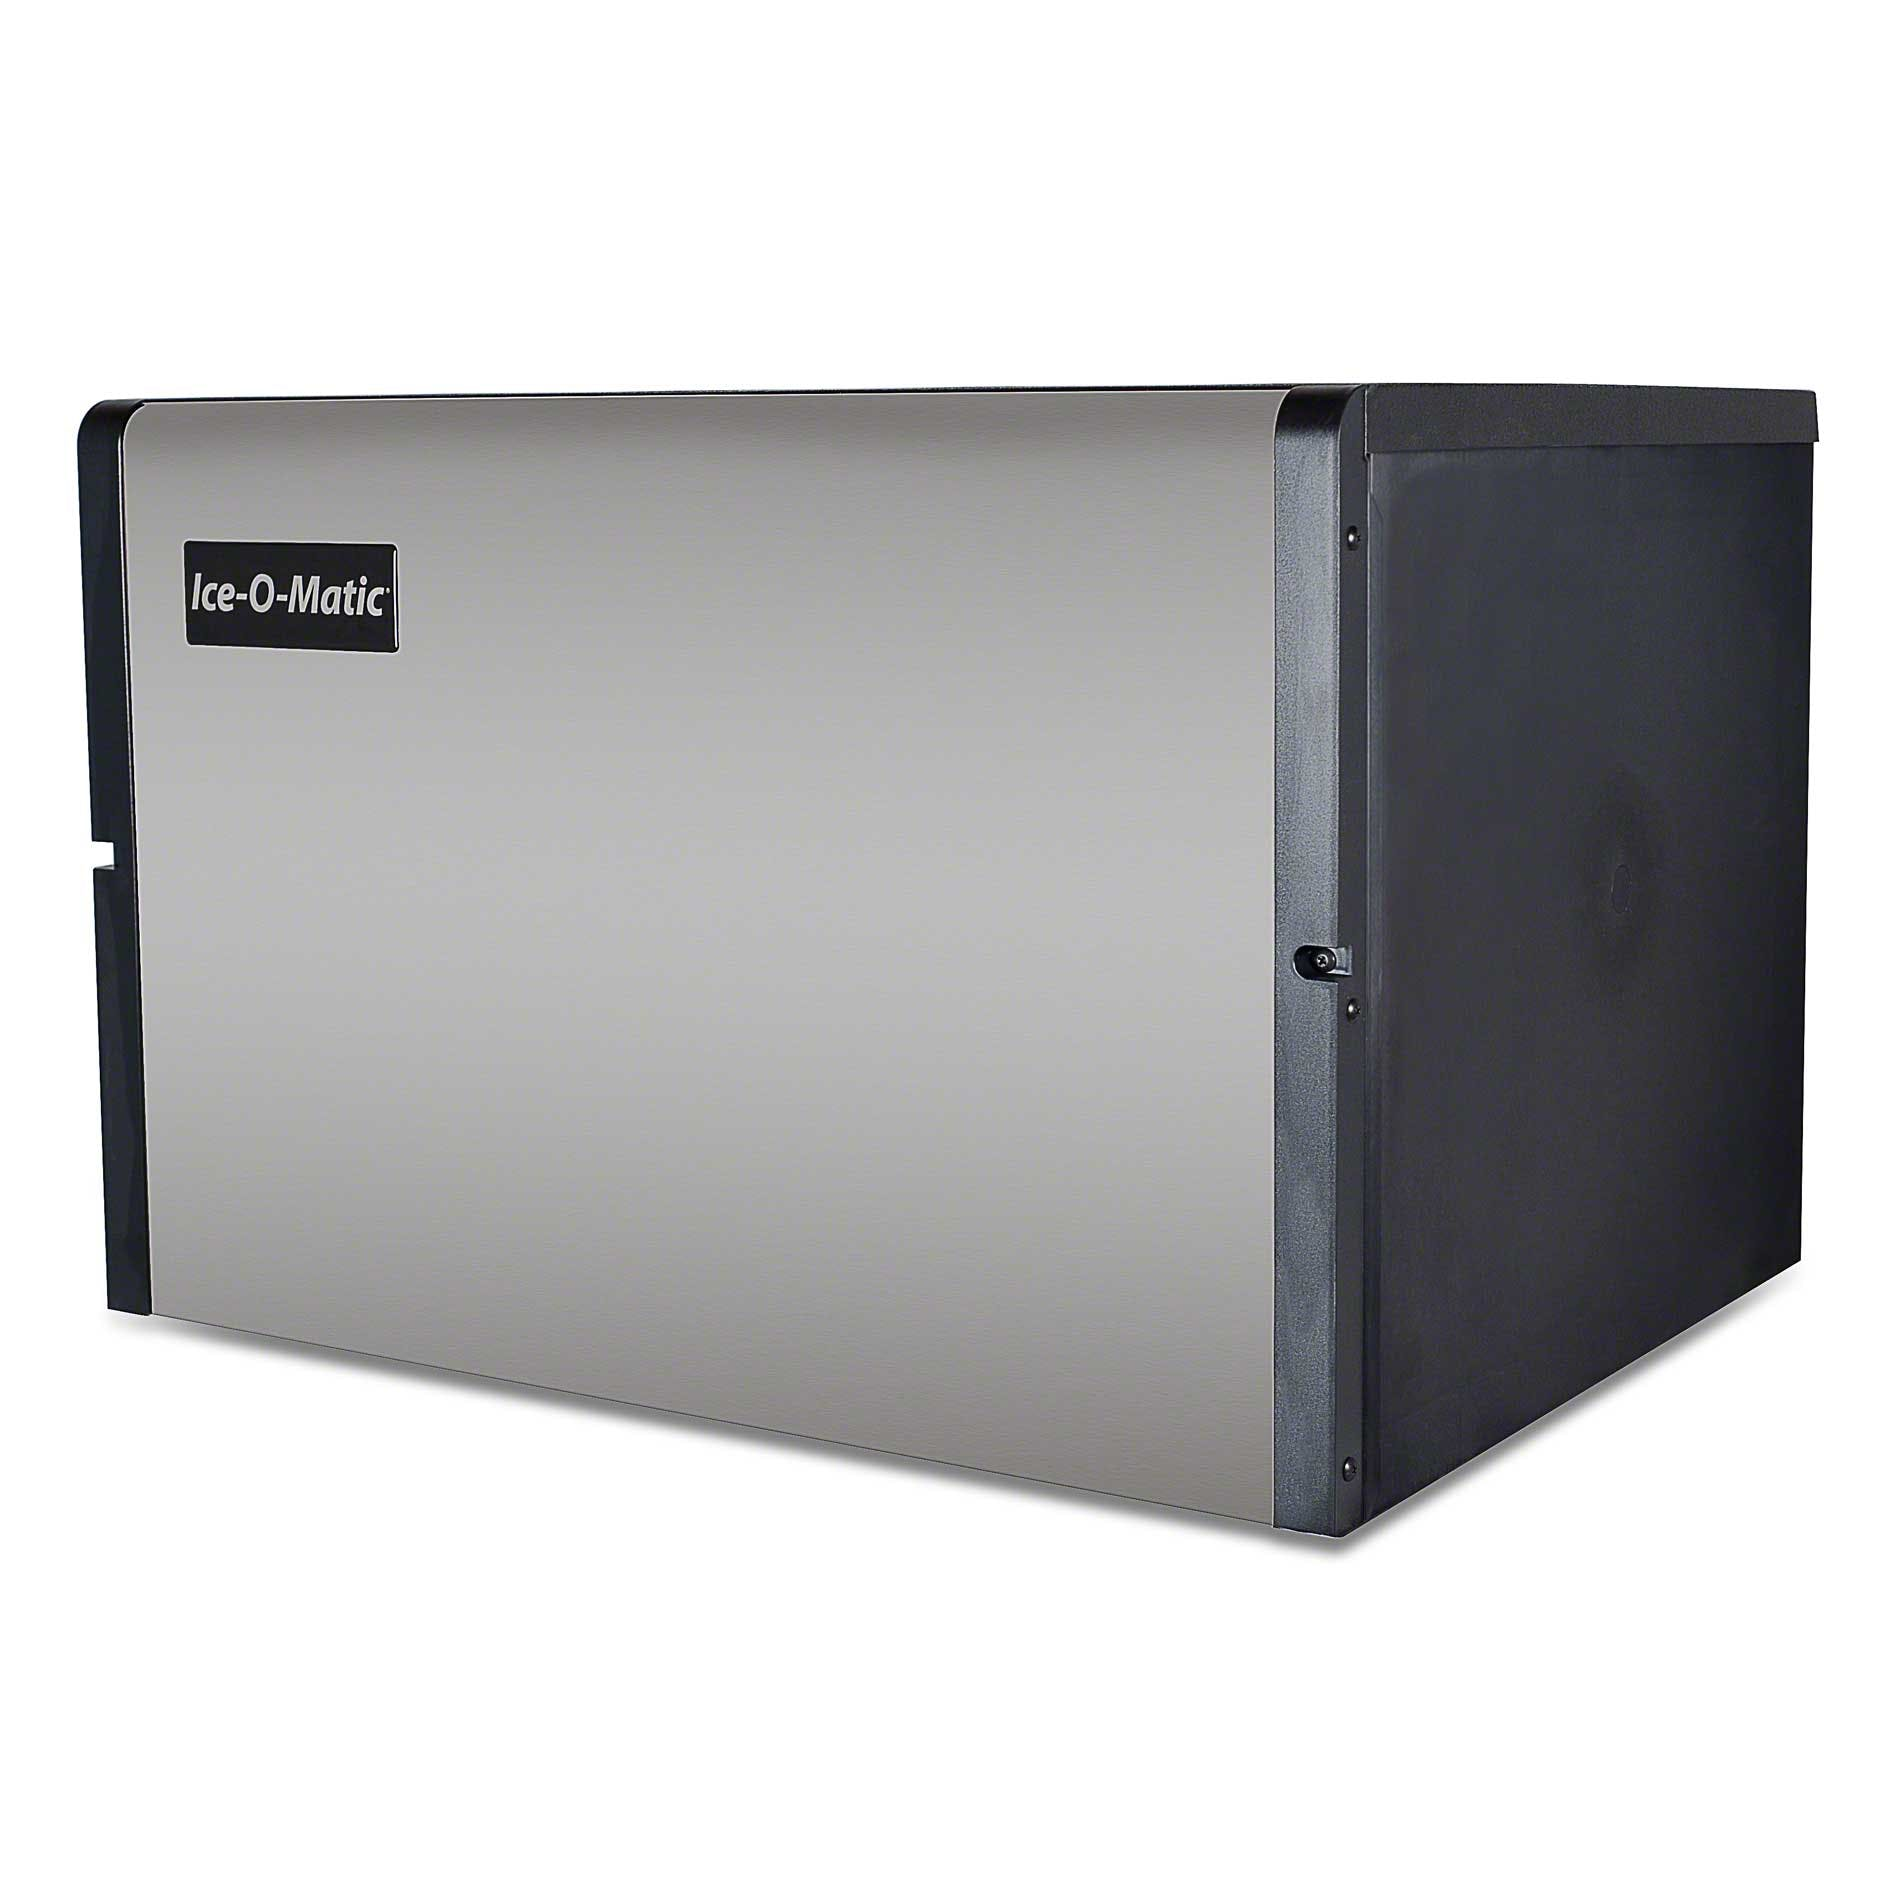 Ice-O-Matic - ICE0500FT 586 lb Full Cube Ice Machine - sold by Food Service Warehouse